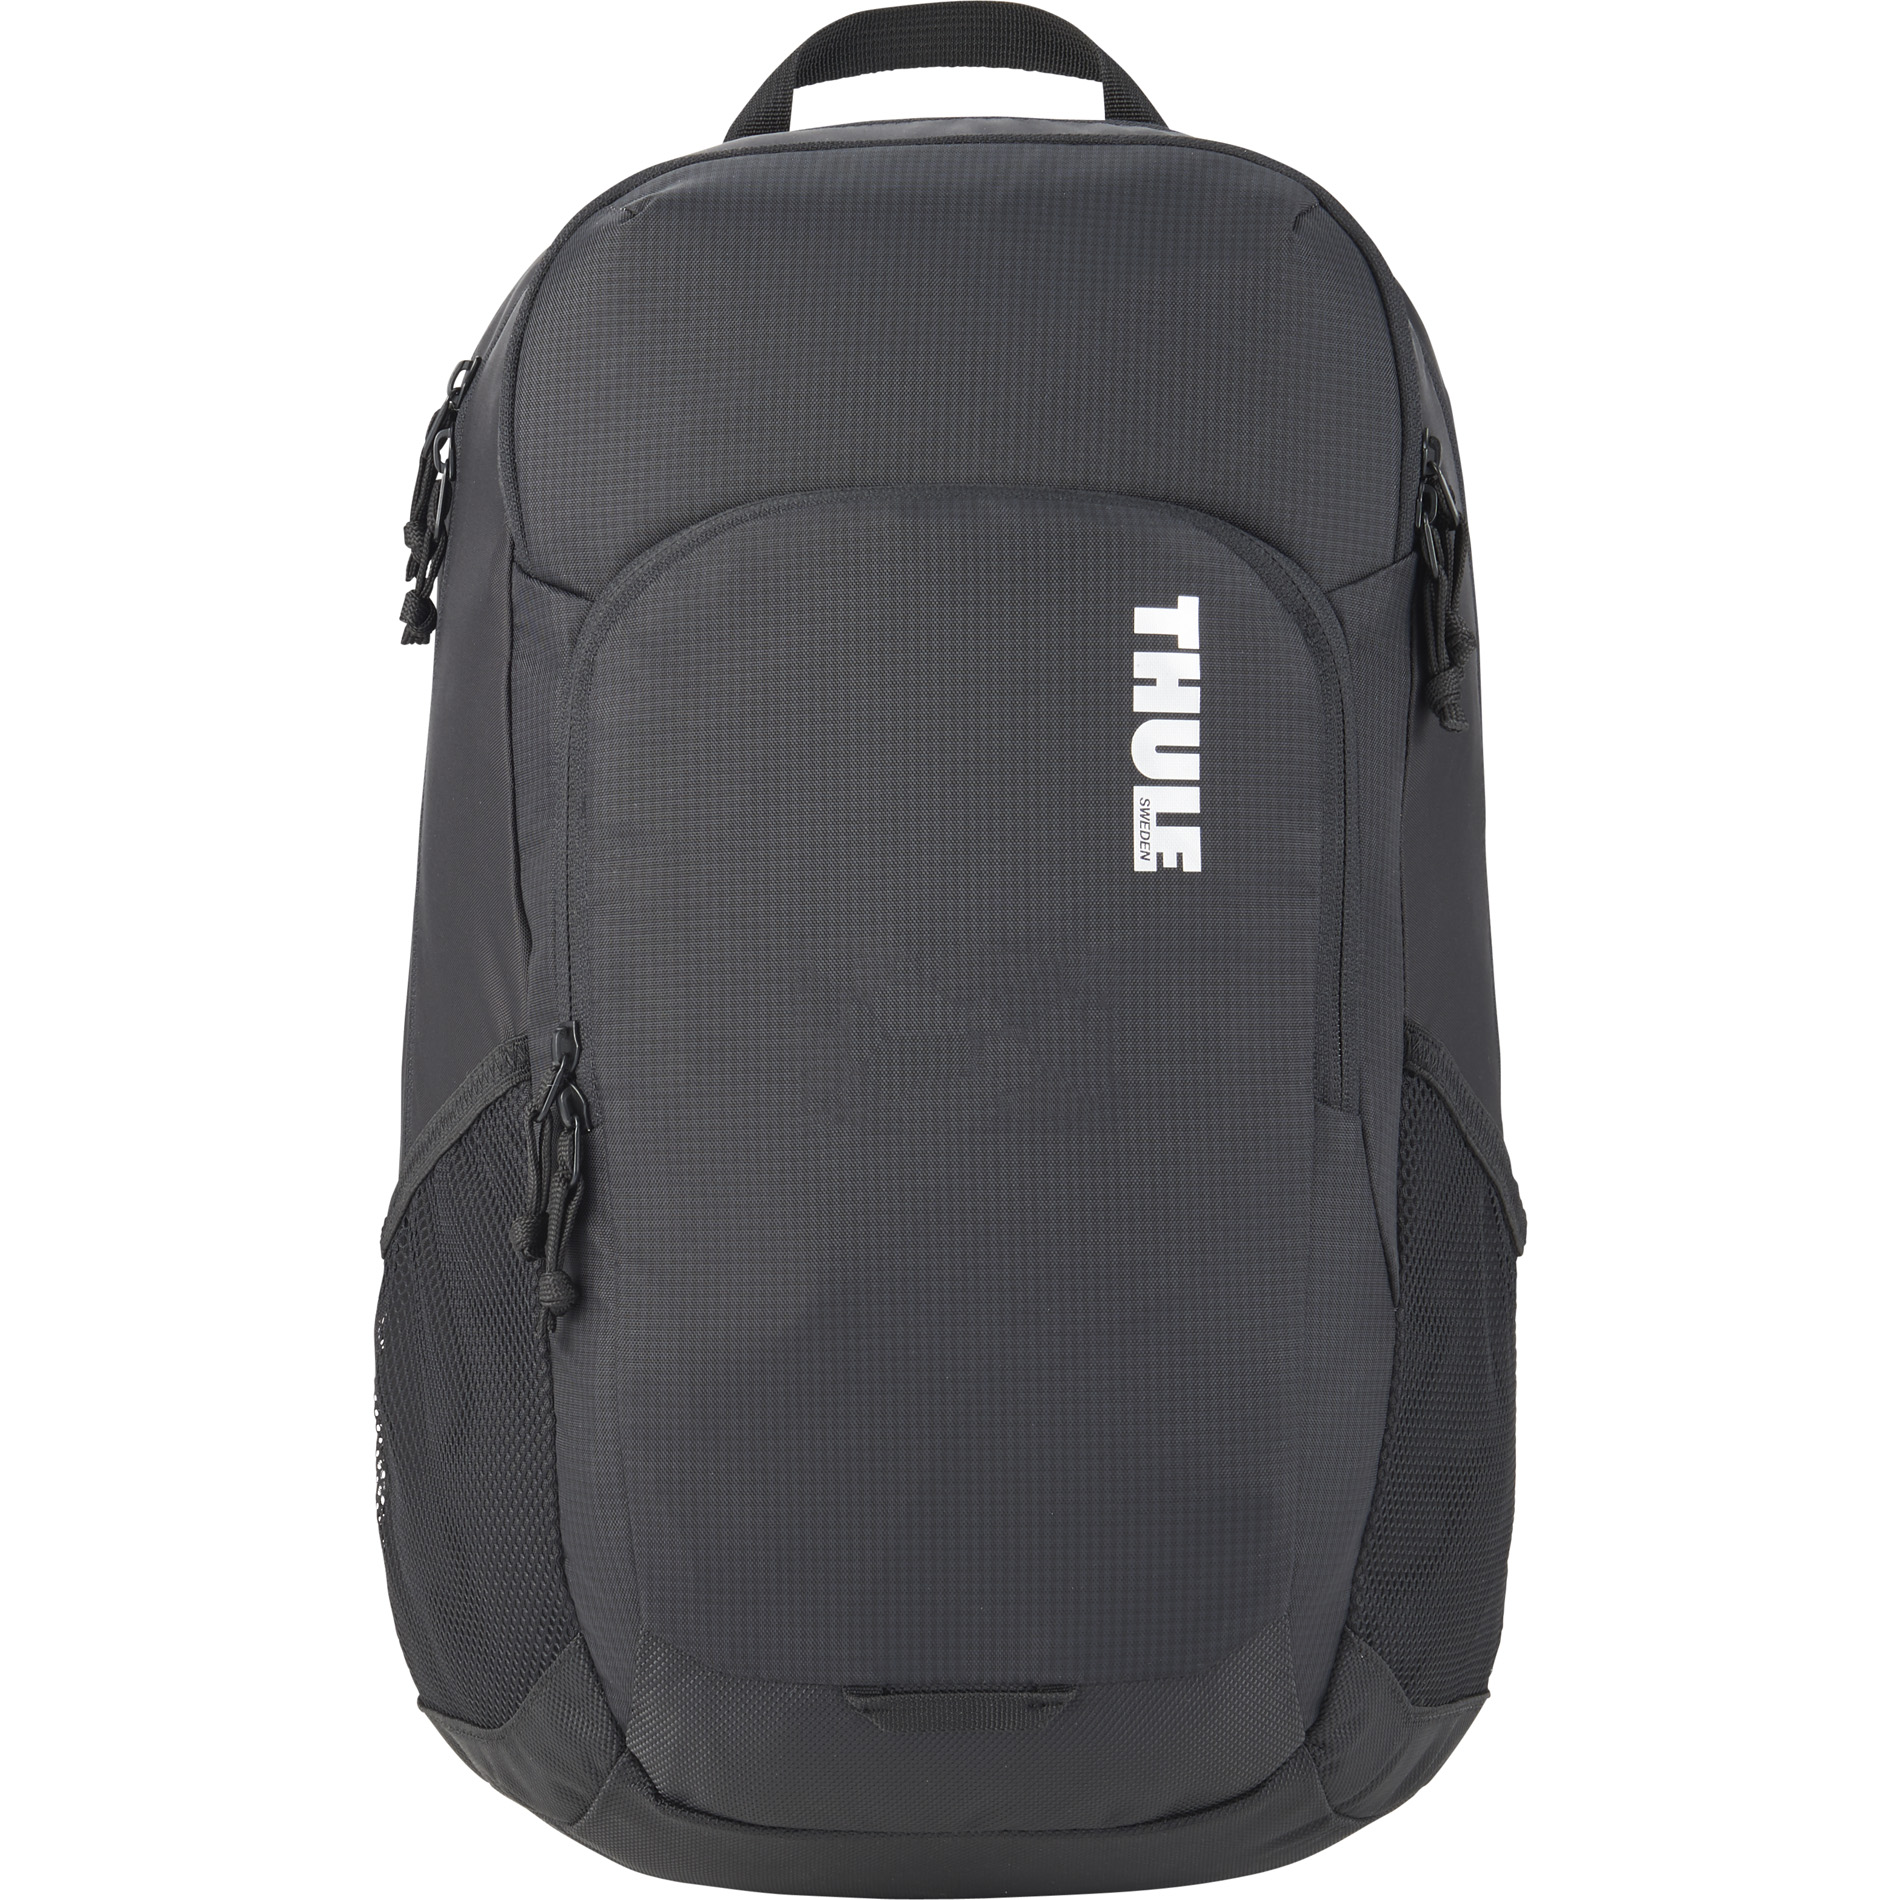 "Thule 9020-39 - Achiever 15"" Computer Backpack"